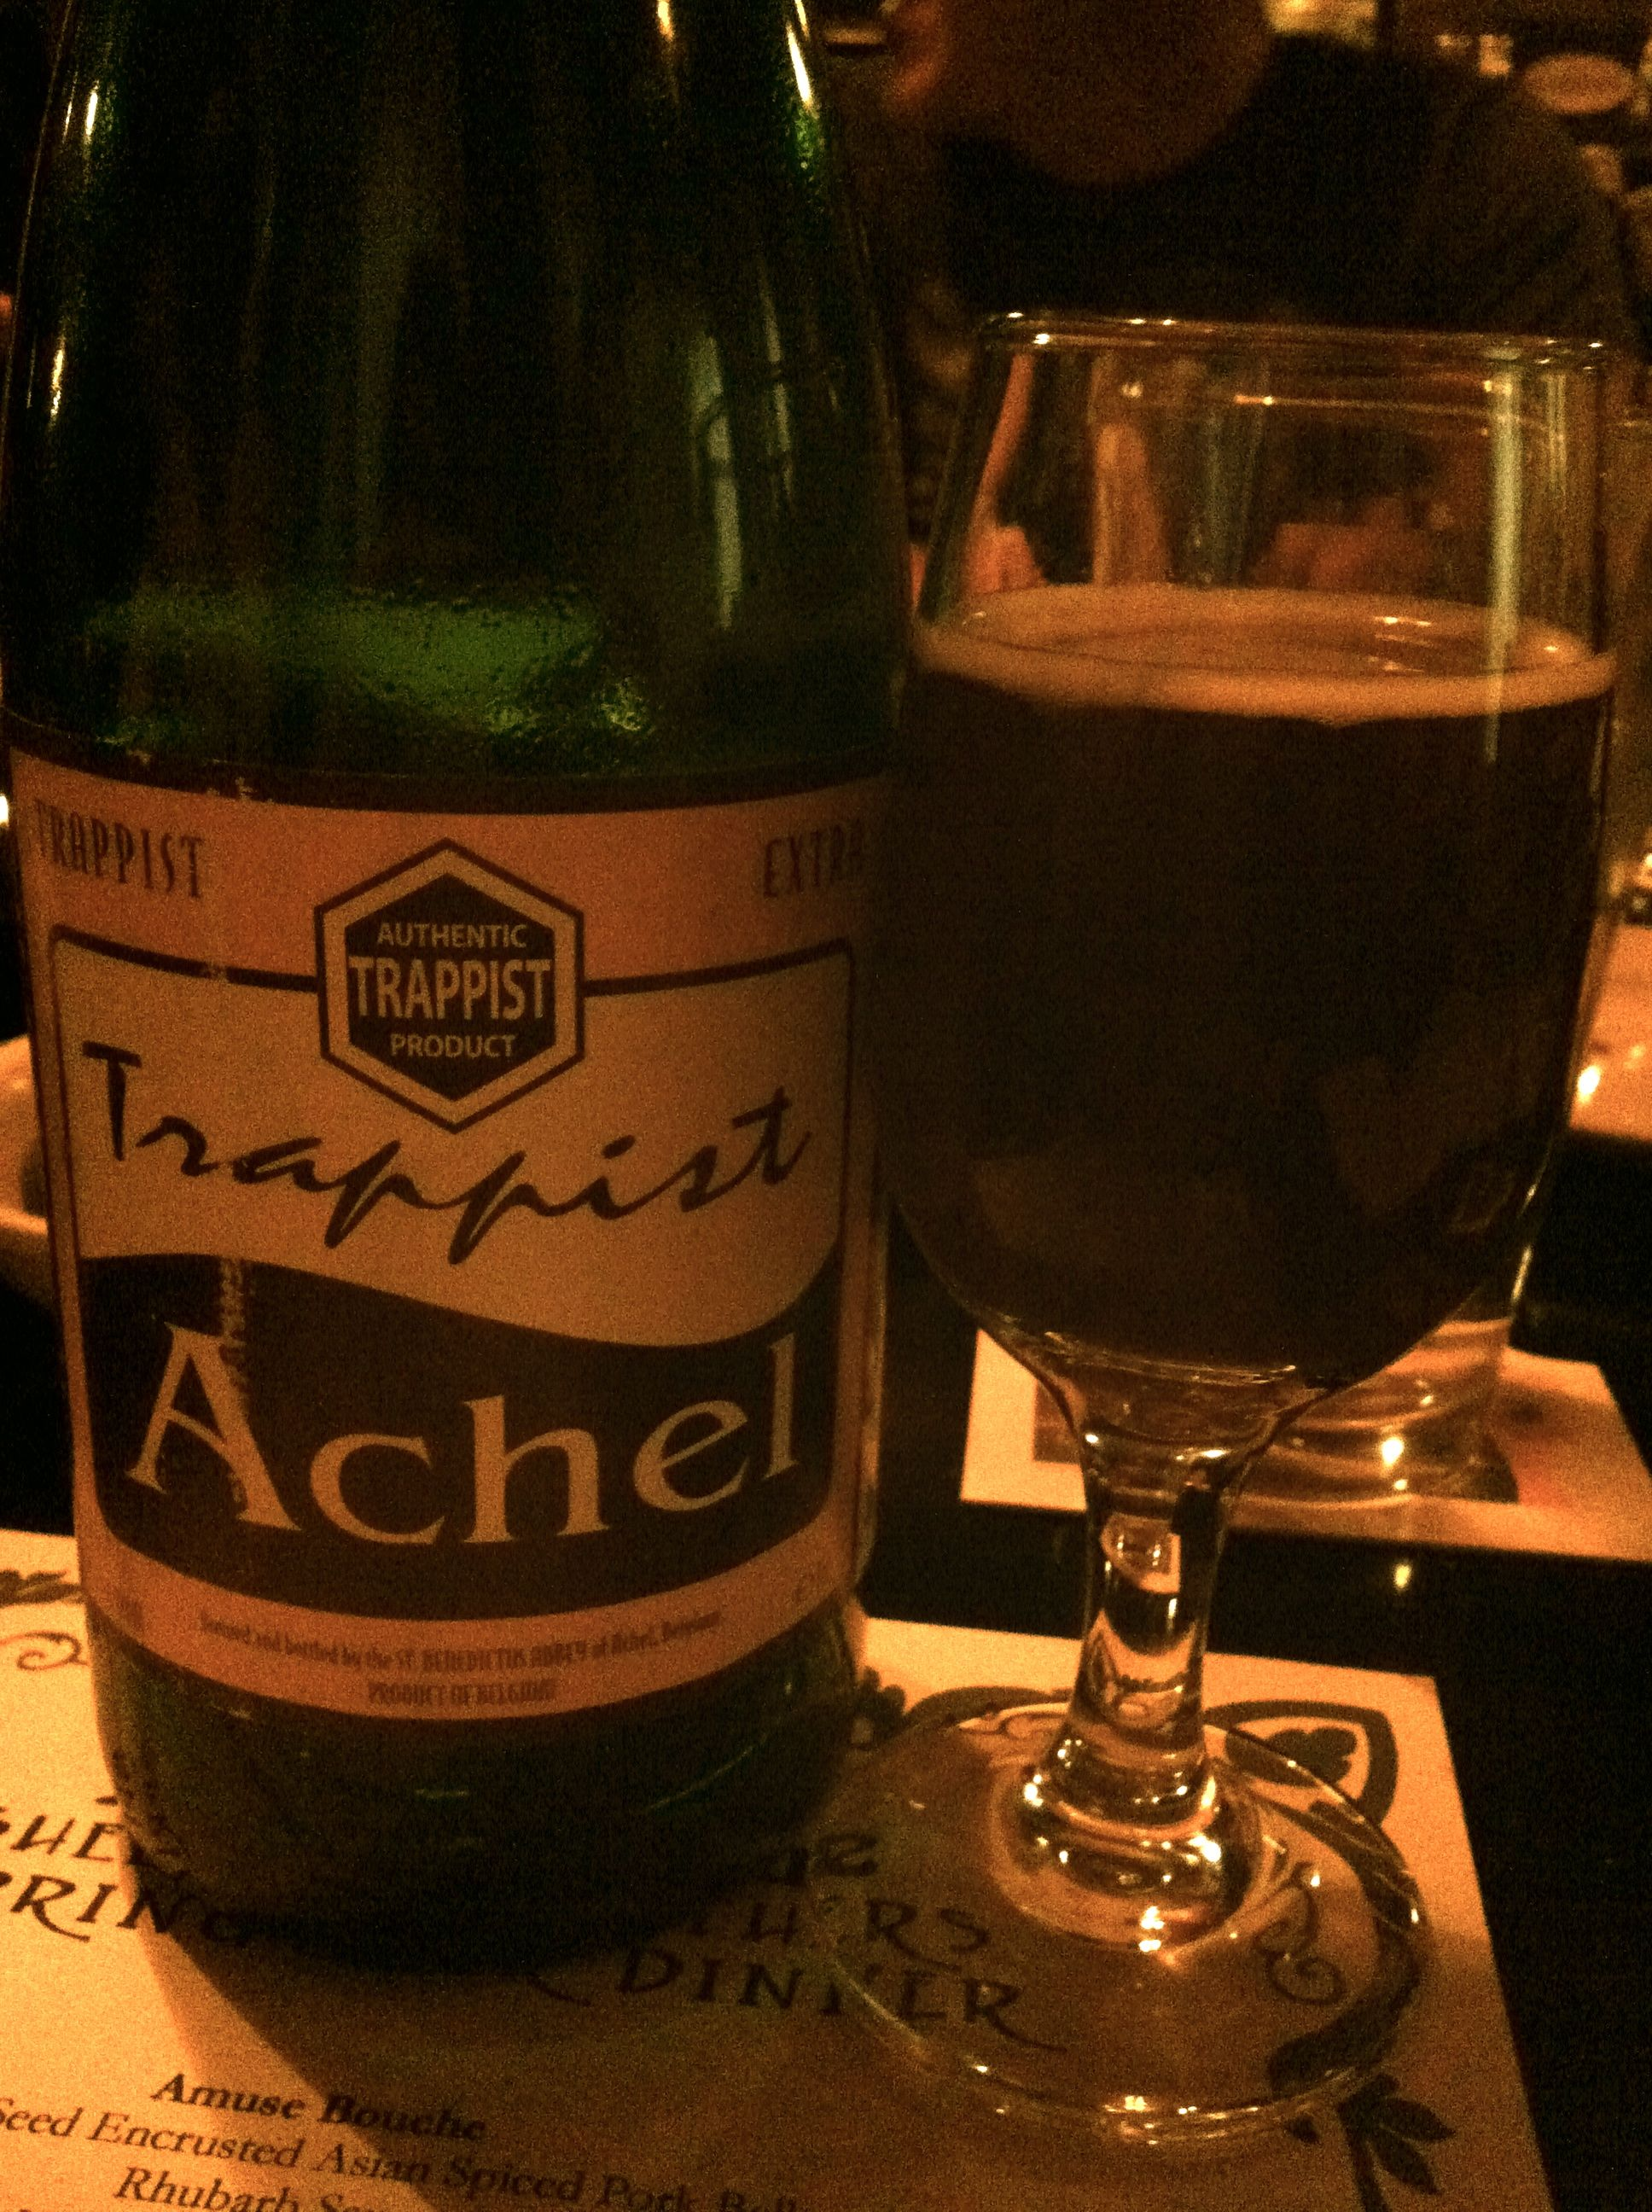 Trappist Achel at Black and Blue, Easton.